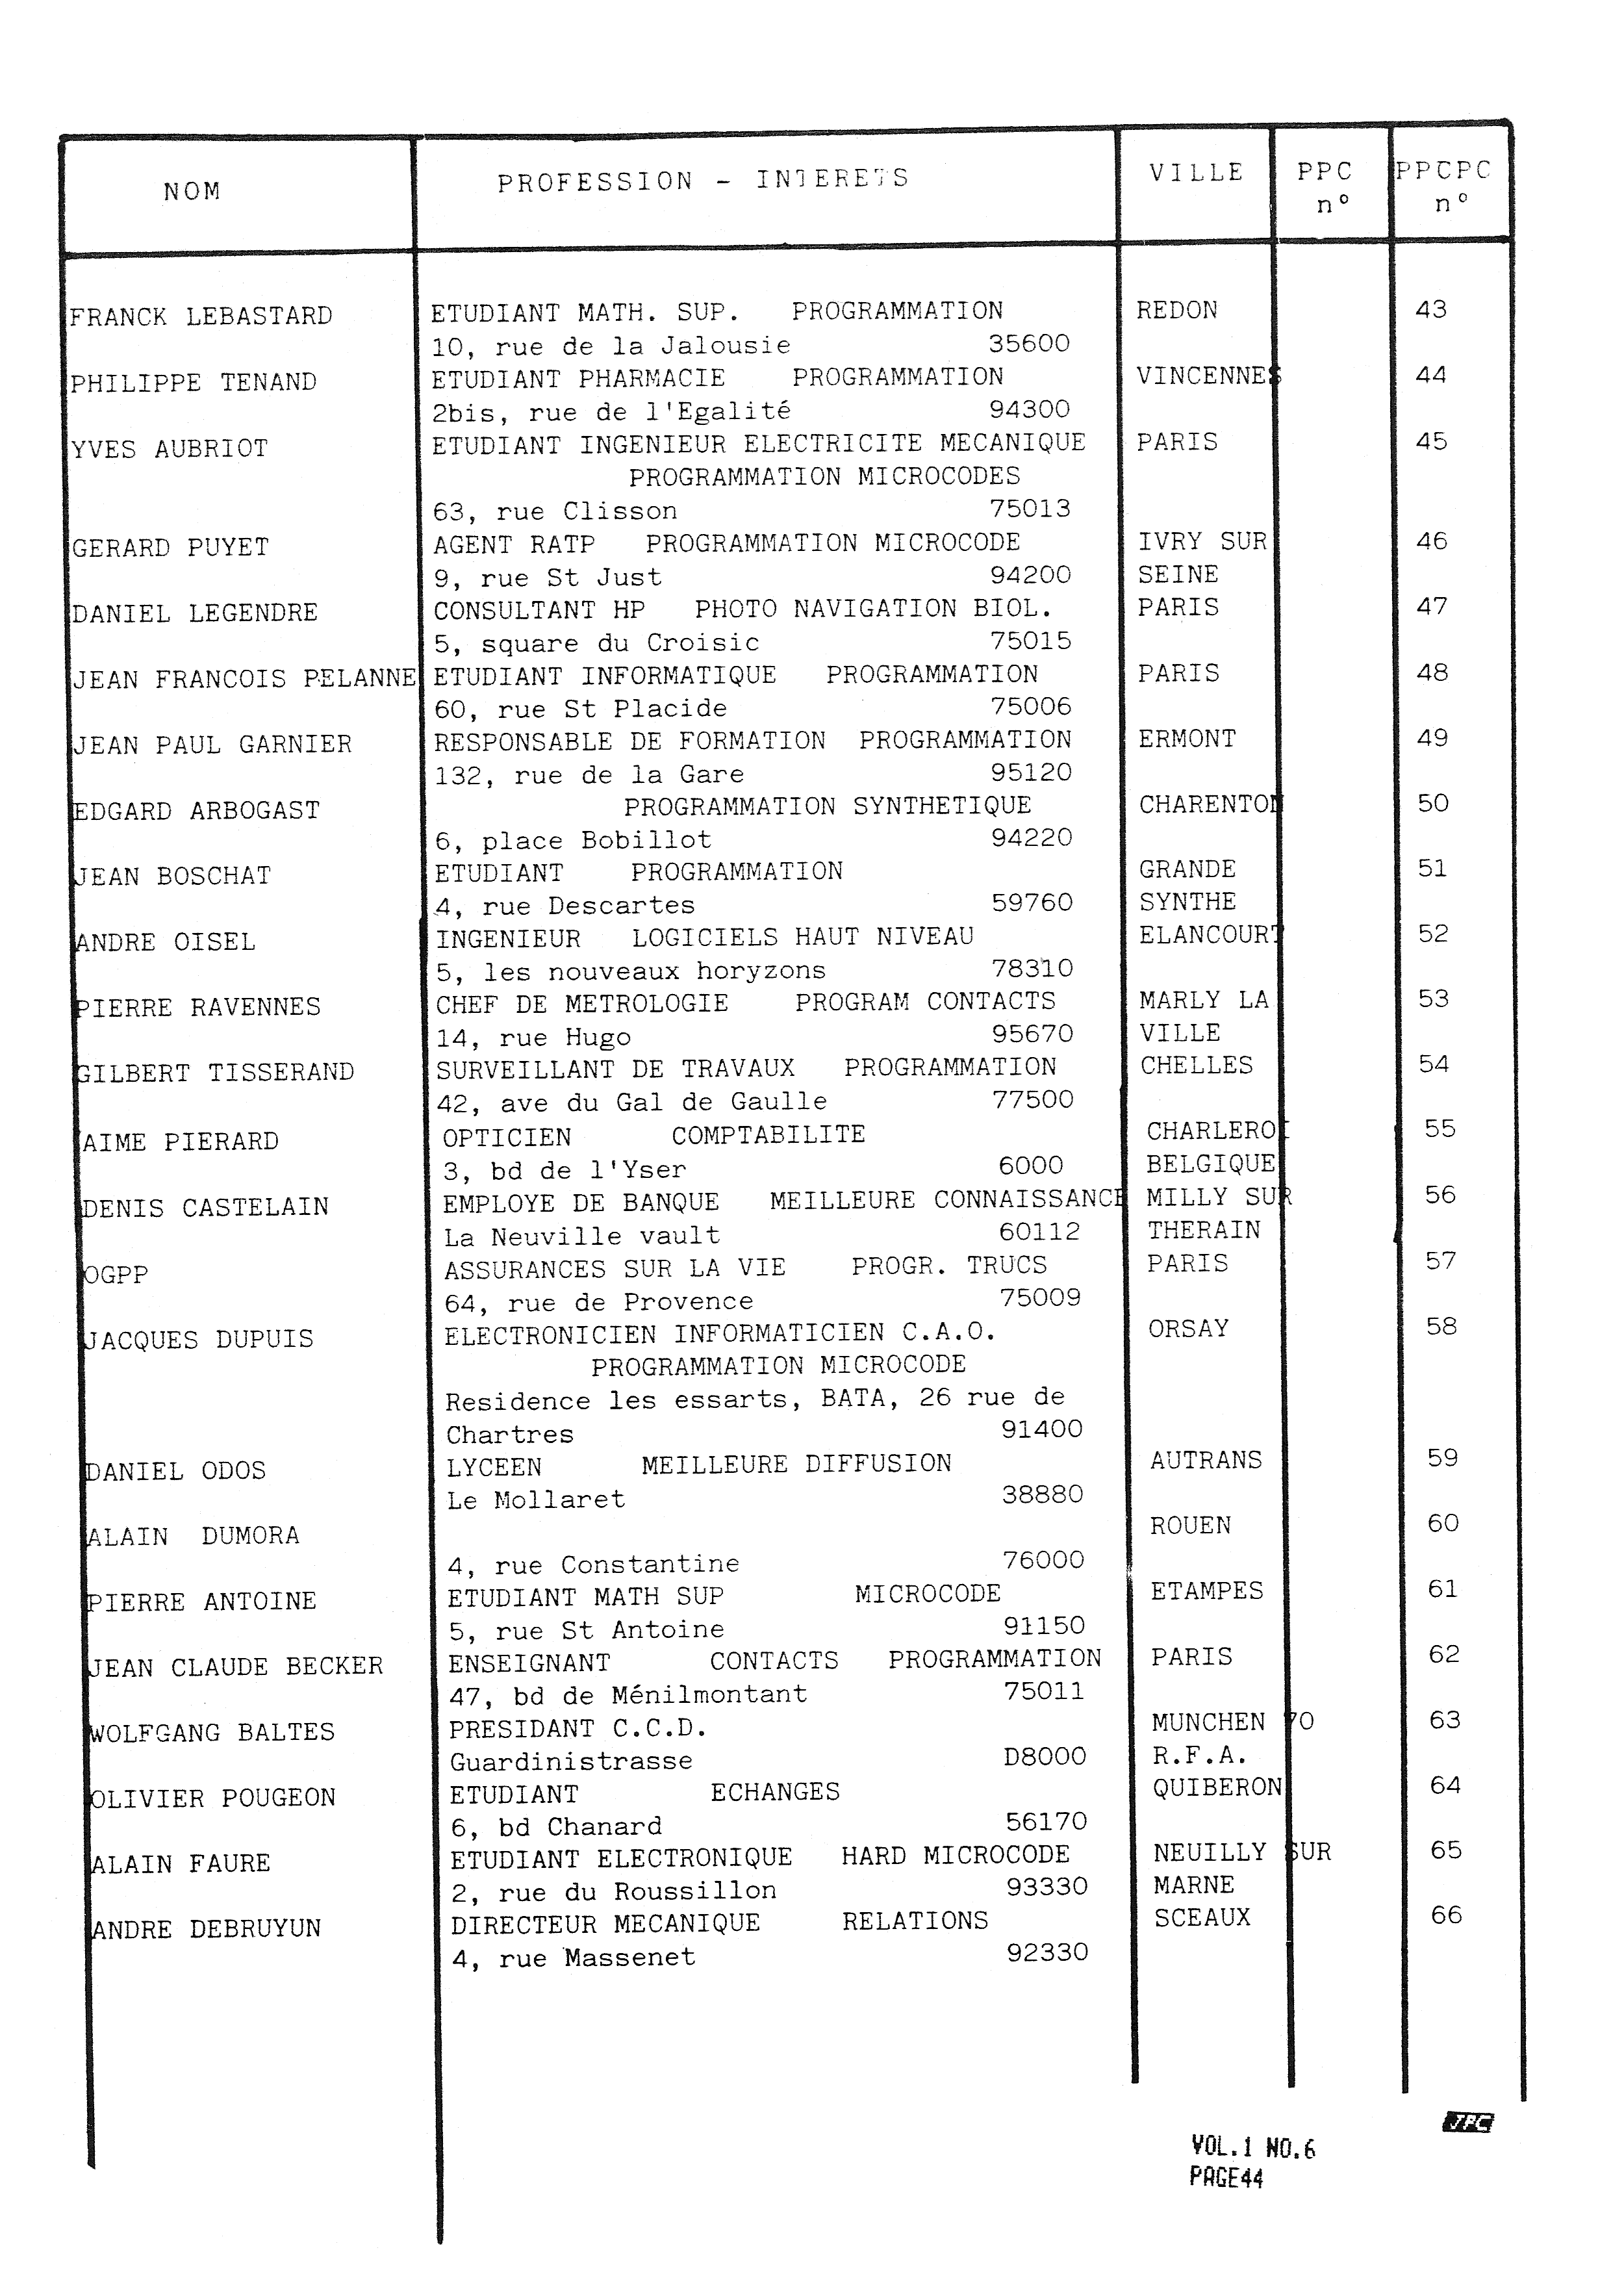 Jp-6-page-45-1000